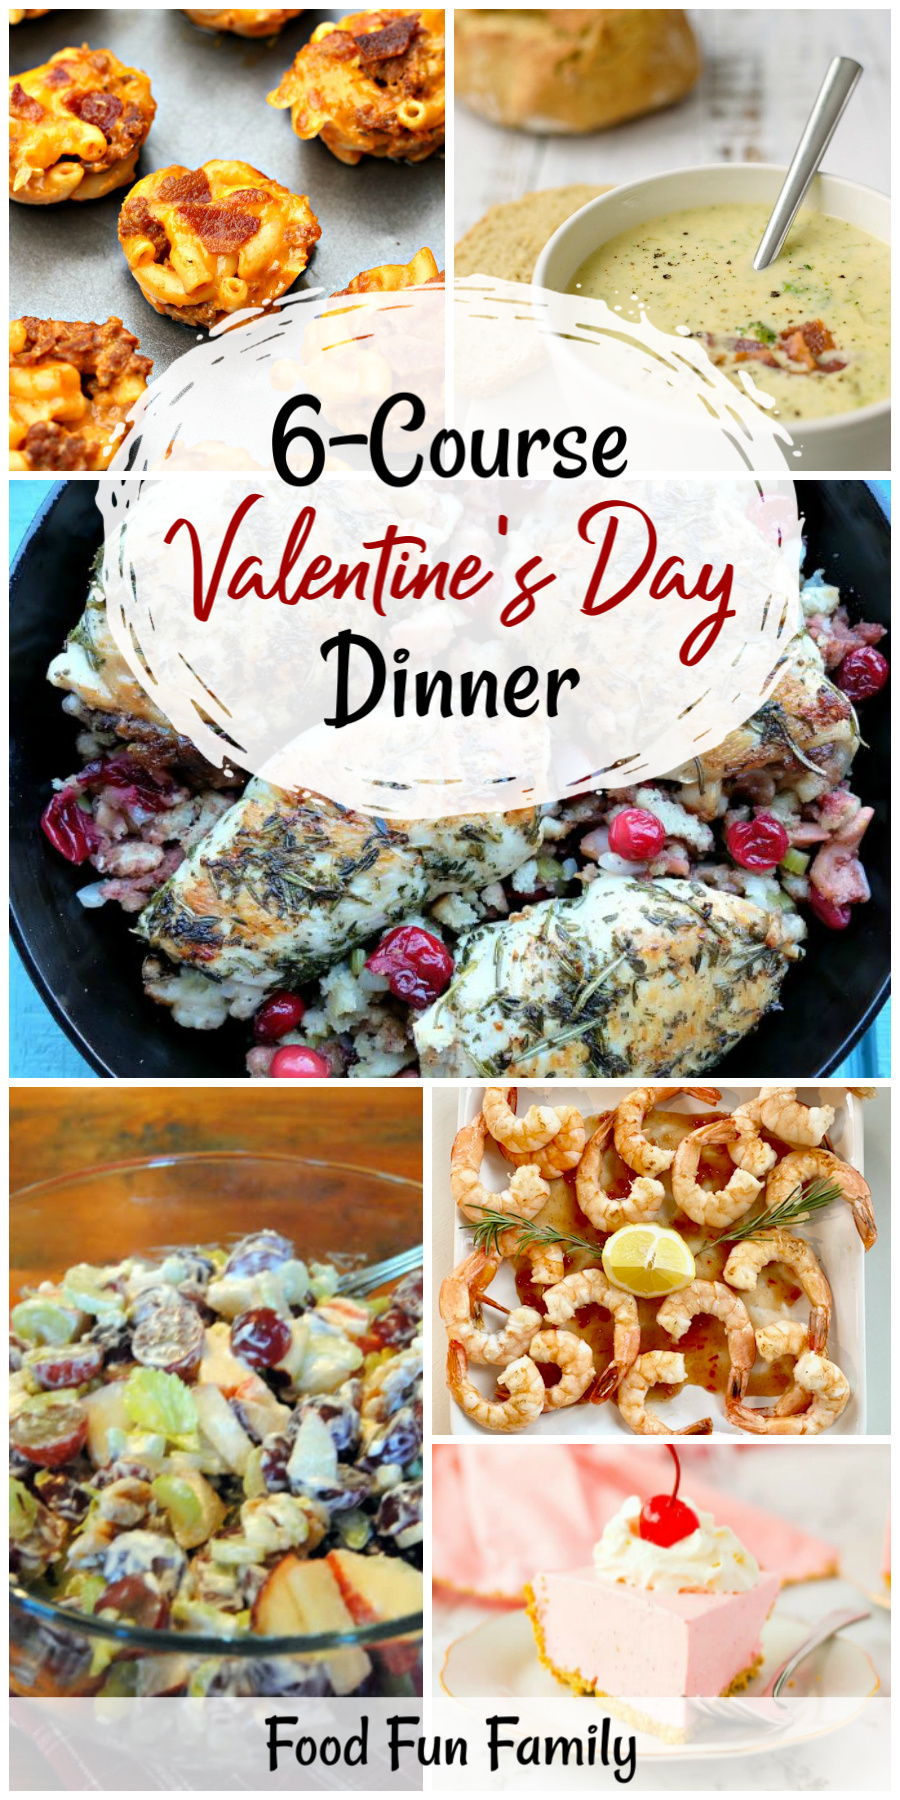 6-Course Valentine's Day dinner - a Delicious Dishes Recipe Party with Food Fun Family